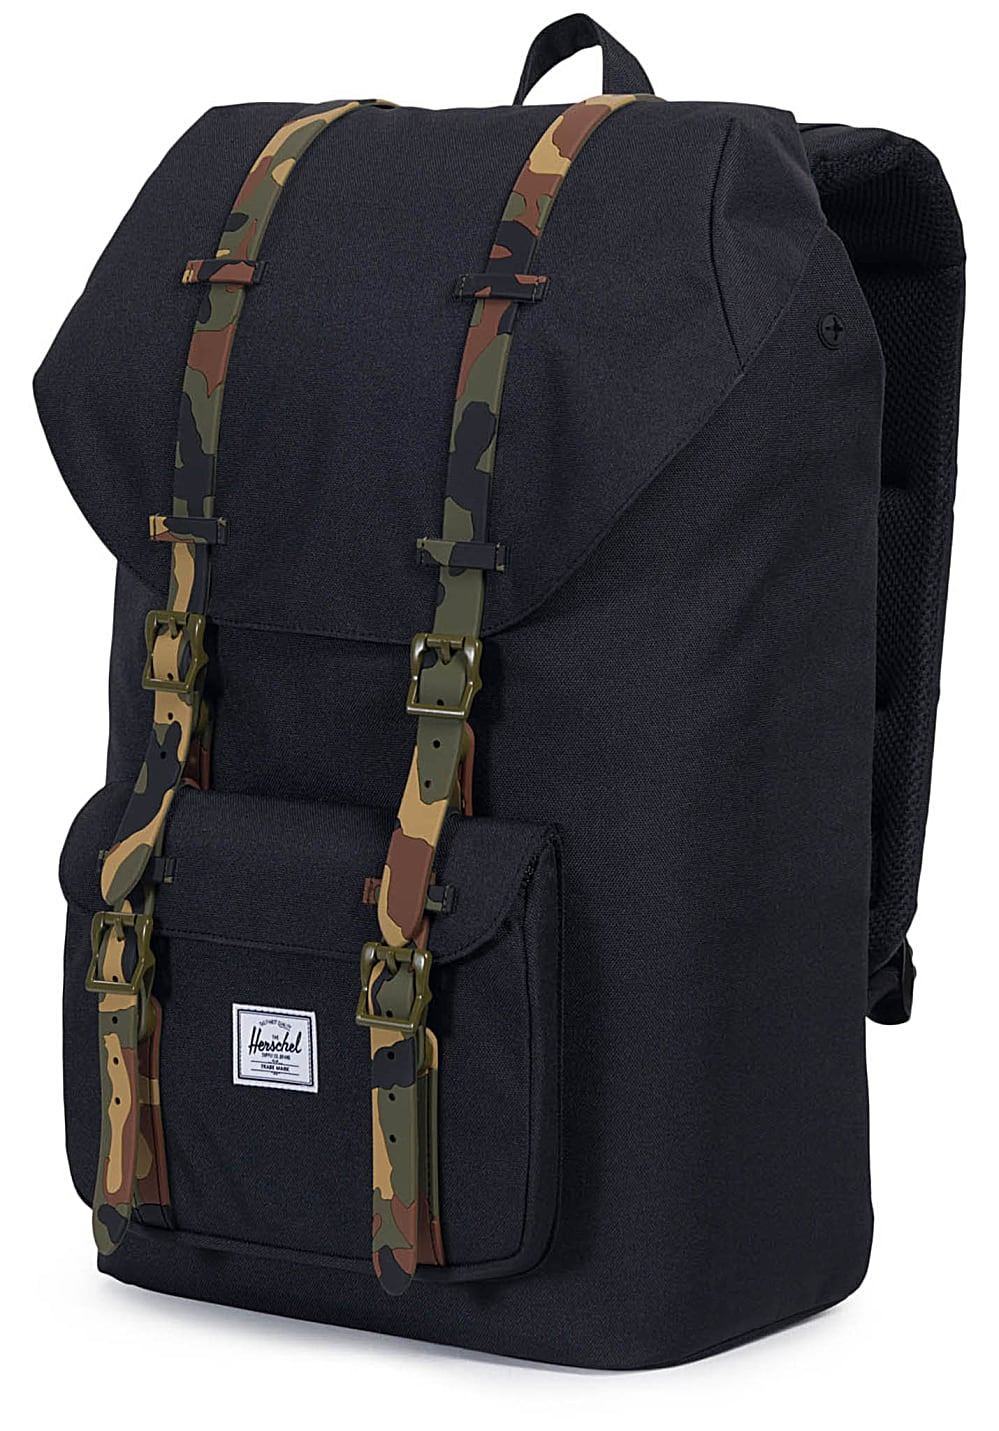 61432301f97 HERSCHEL SUPPLY CO Little America 25L - Rugzak - Zwart - Planet Sports